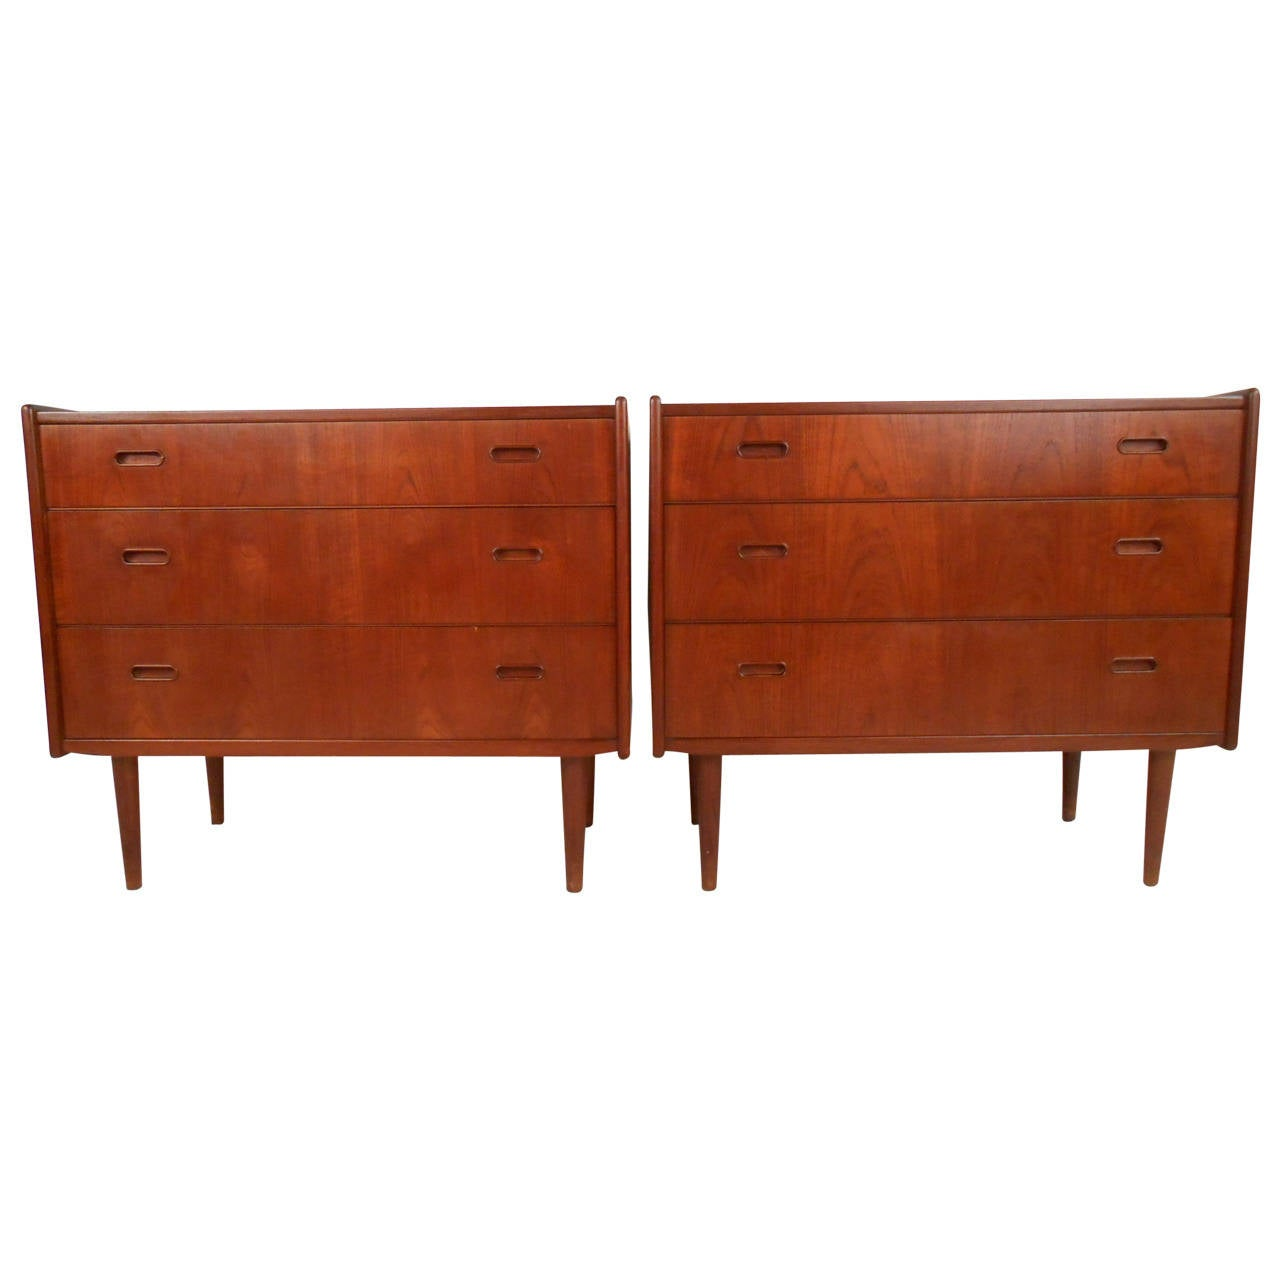 Scandinavian Teak Bedroom Furniture Pair Of Mid Century Modern Danish Teak Bedroom Dressers For Sale